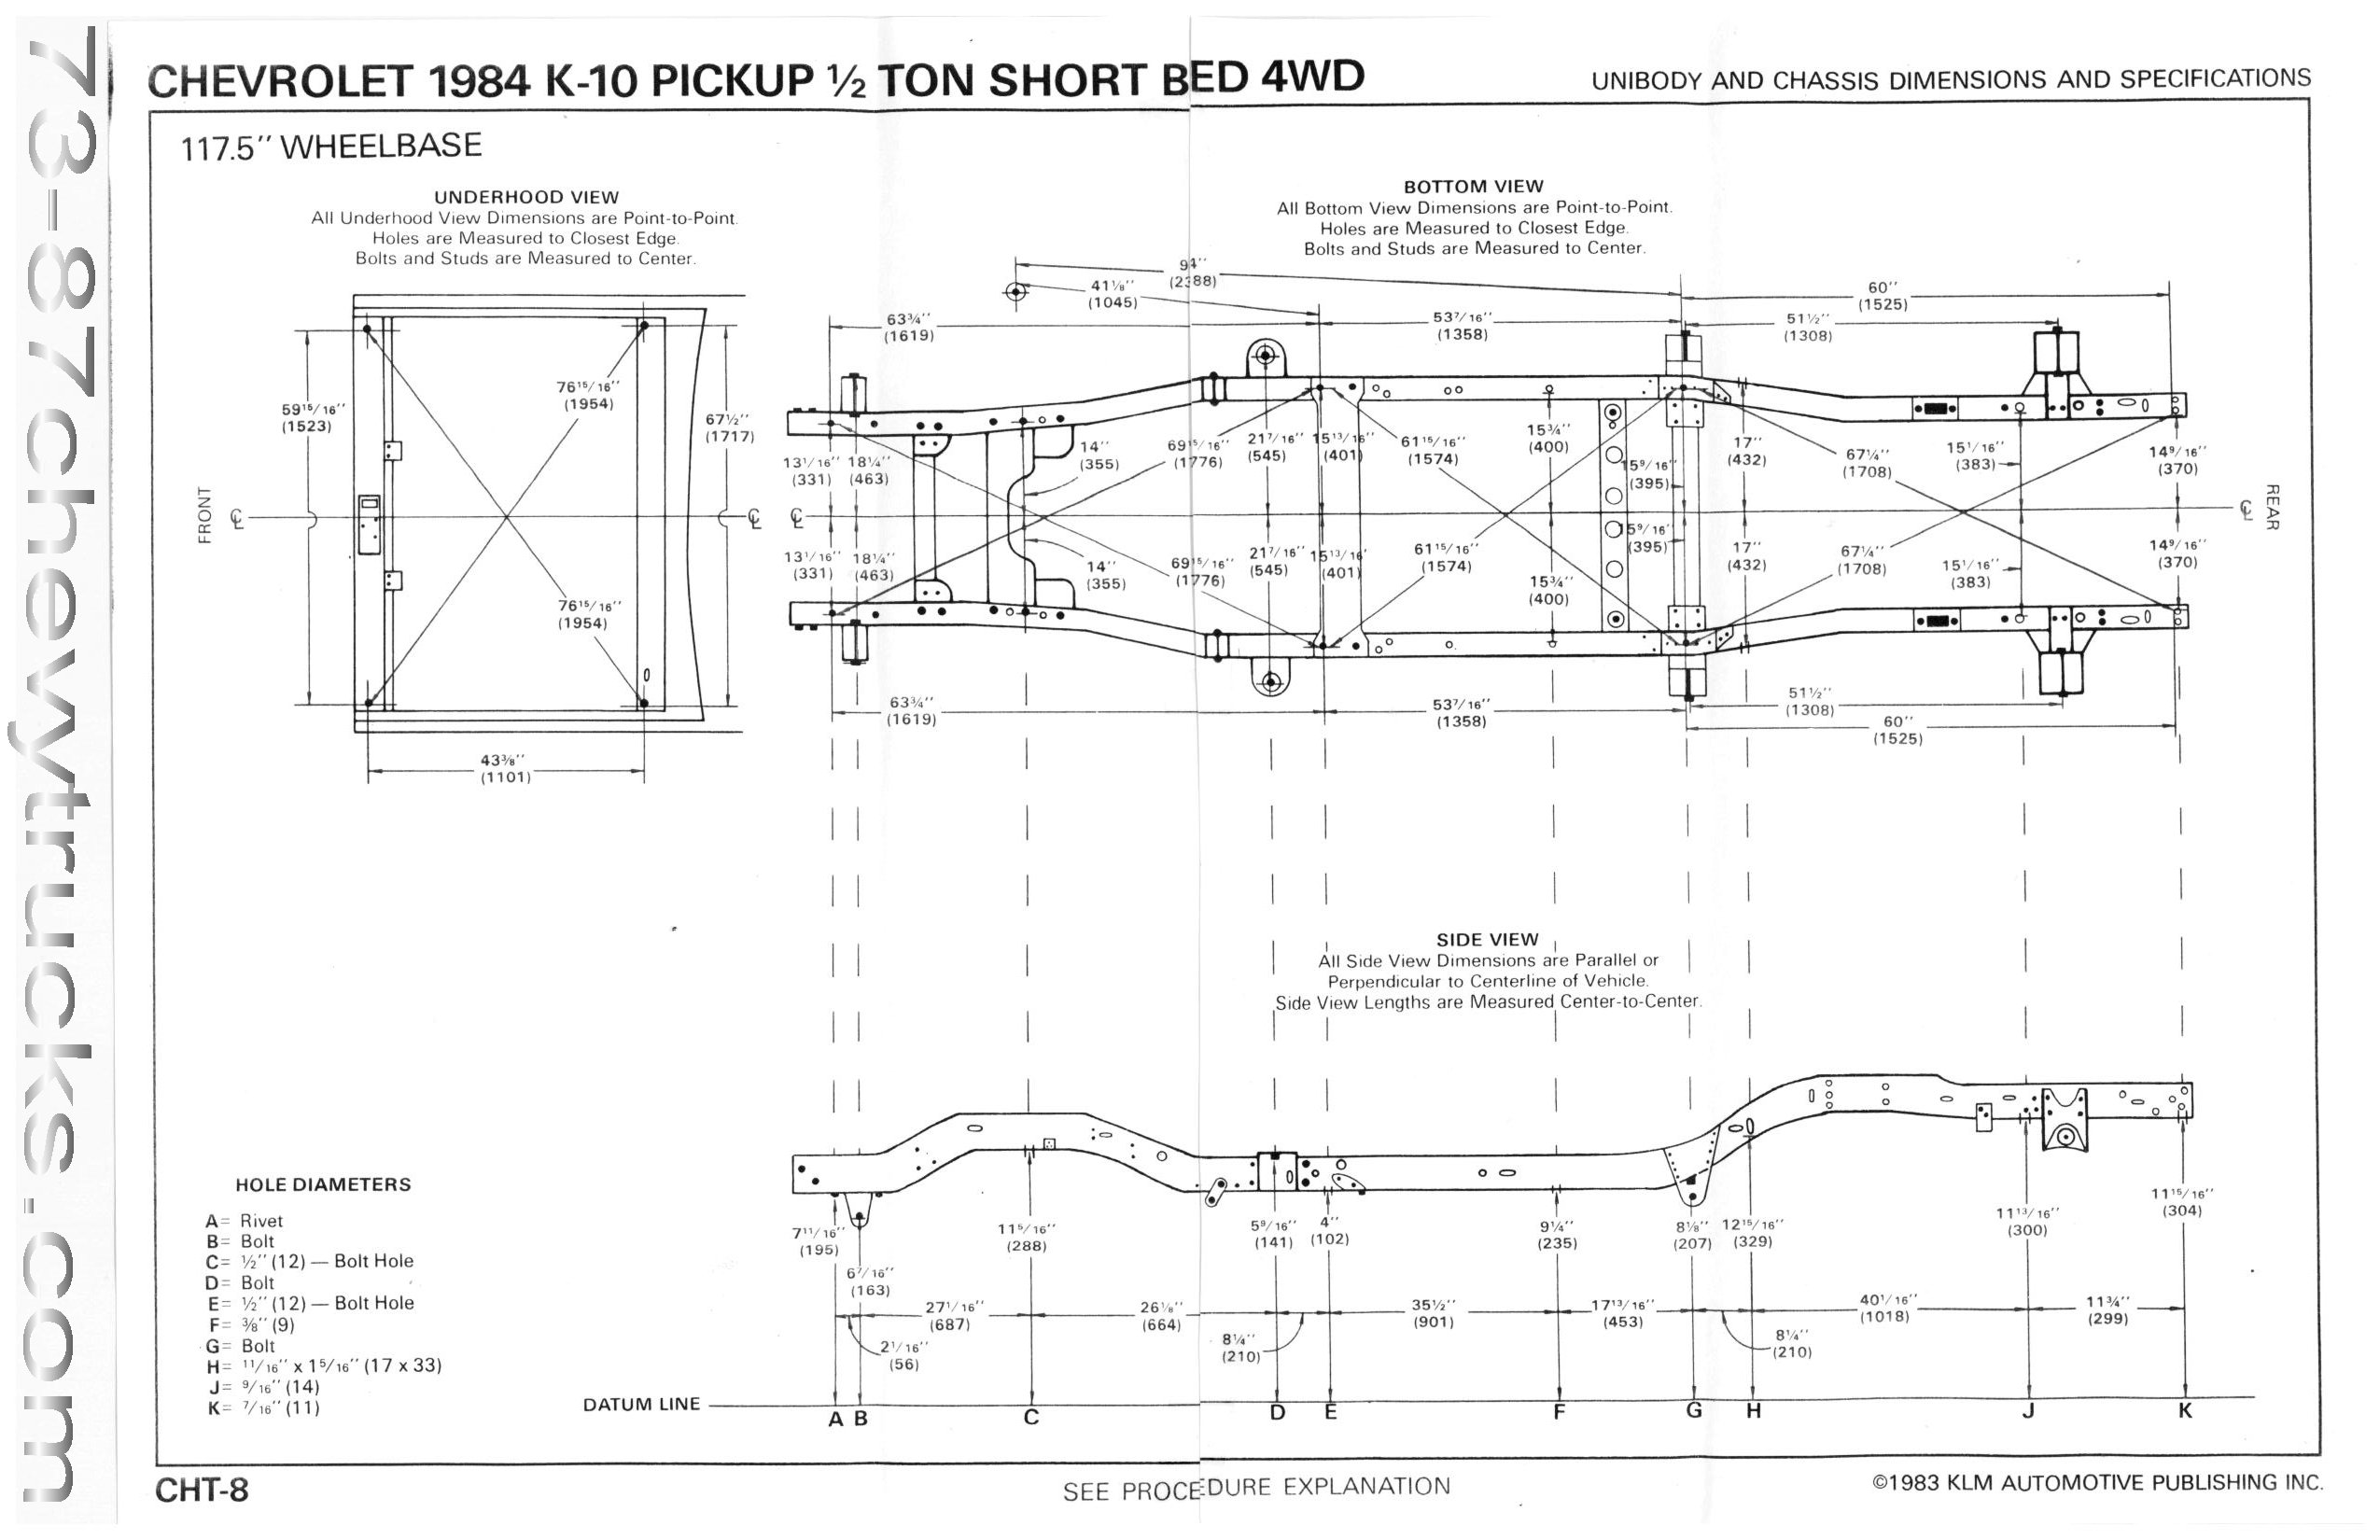 1950 chevy pickup frame dimensions